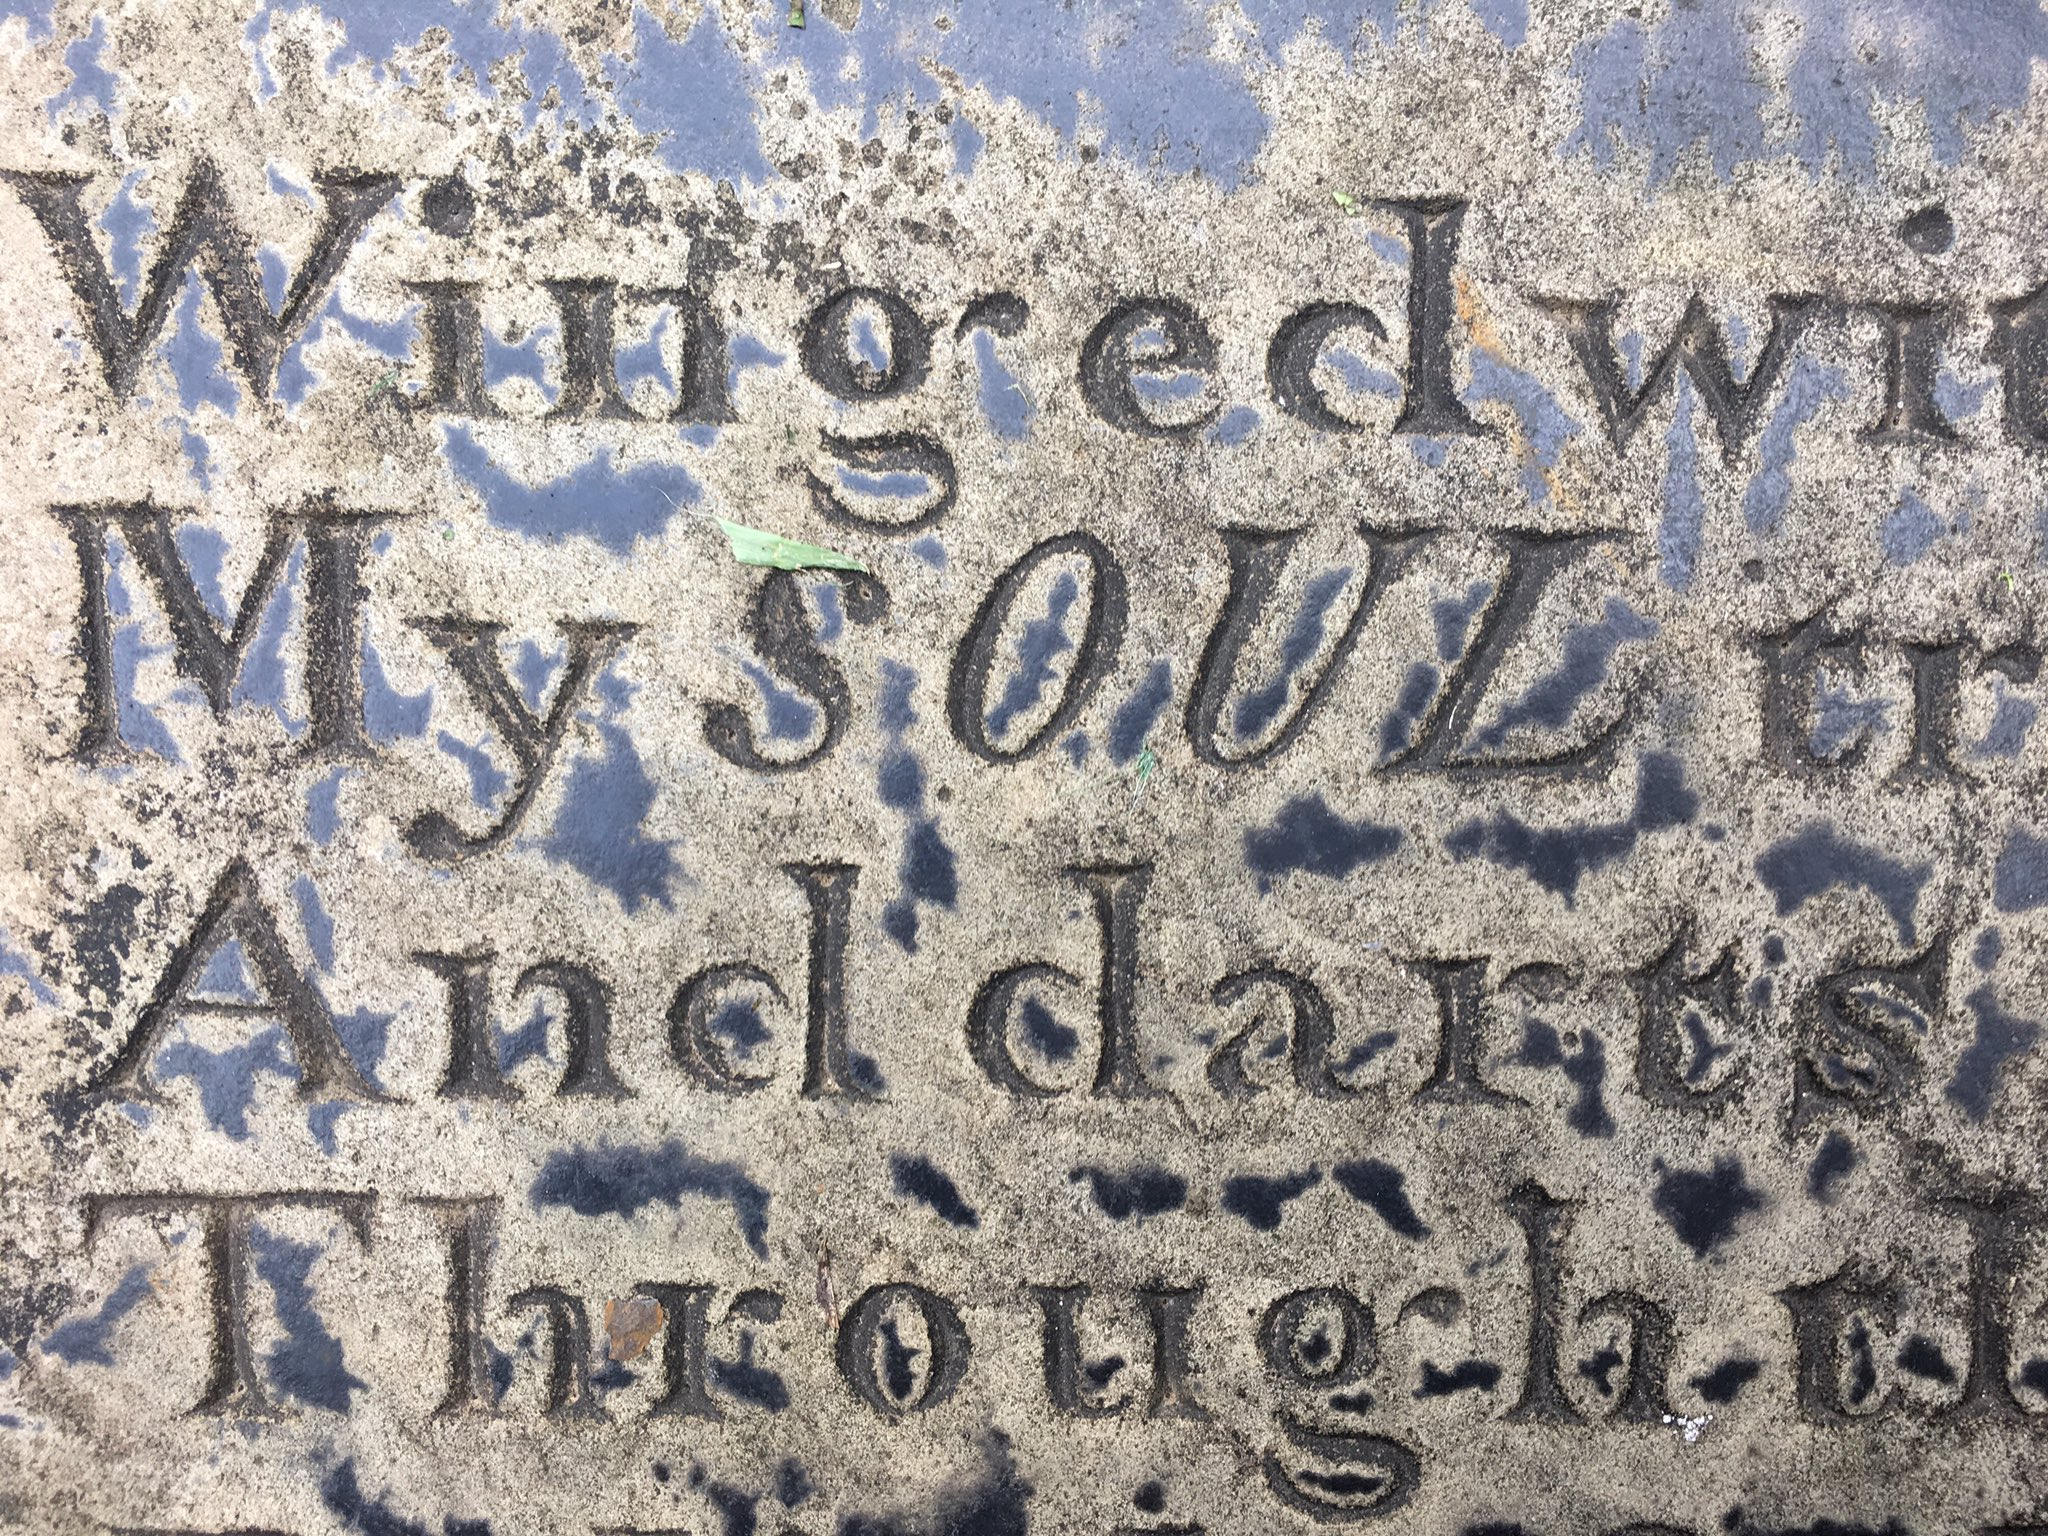 Love this enigmatic depiction of the word 'soul' on a grave of 1838 at Bury @TypeTasting https://t.co/Iv52a9RFVE